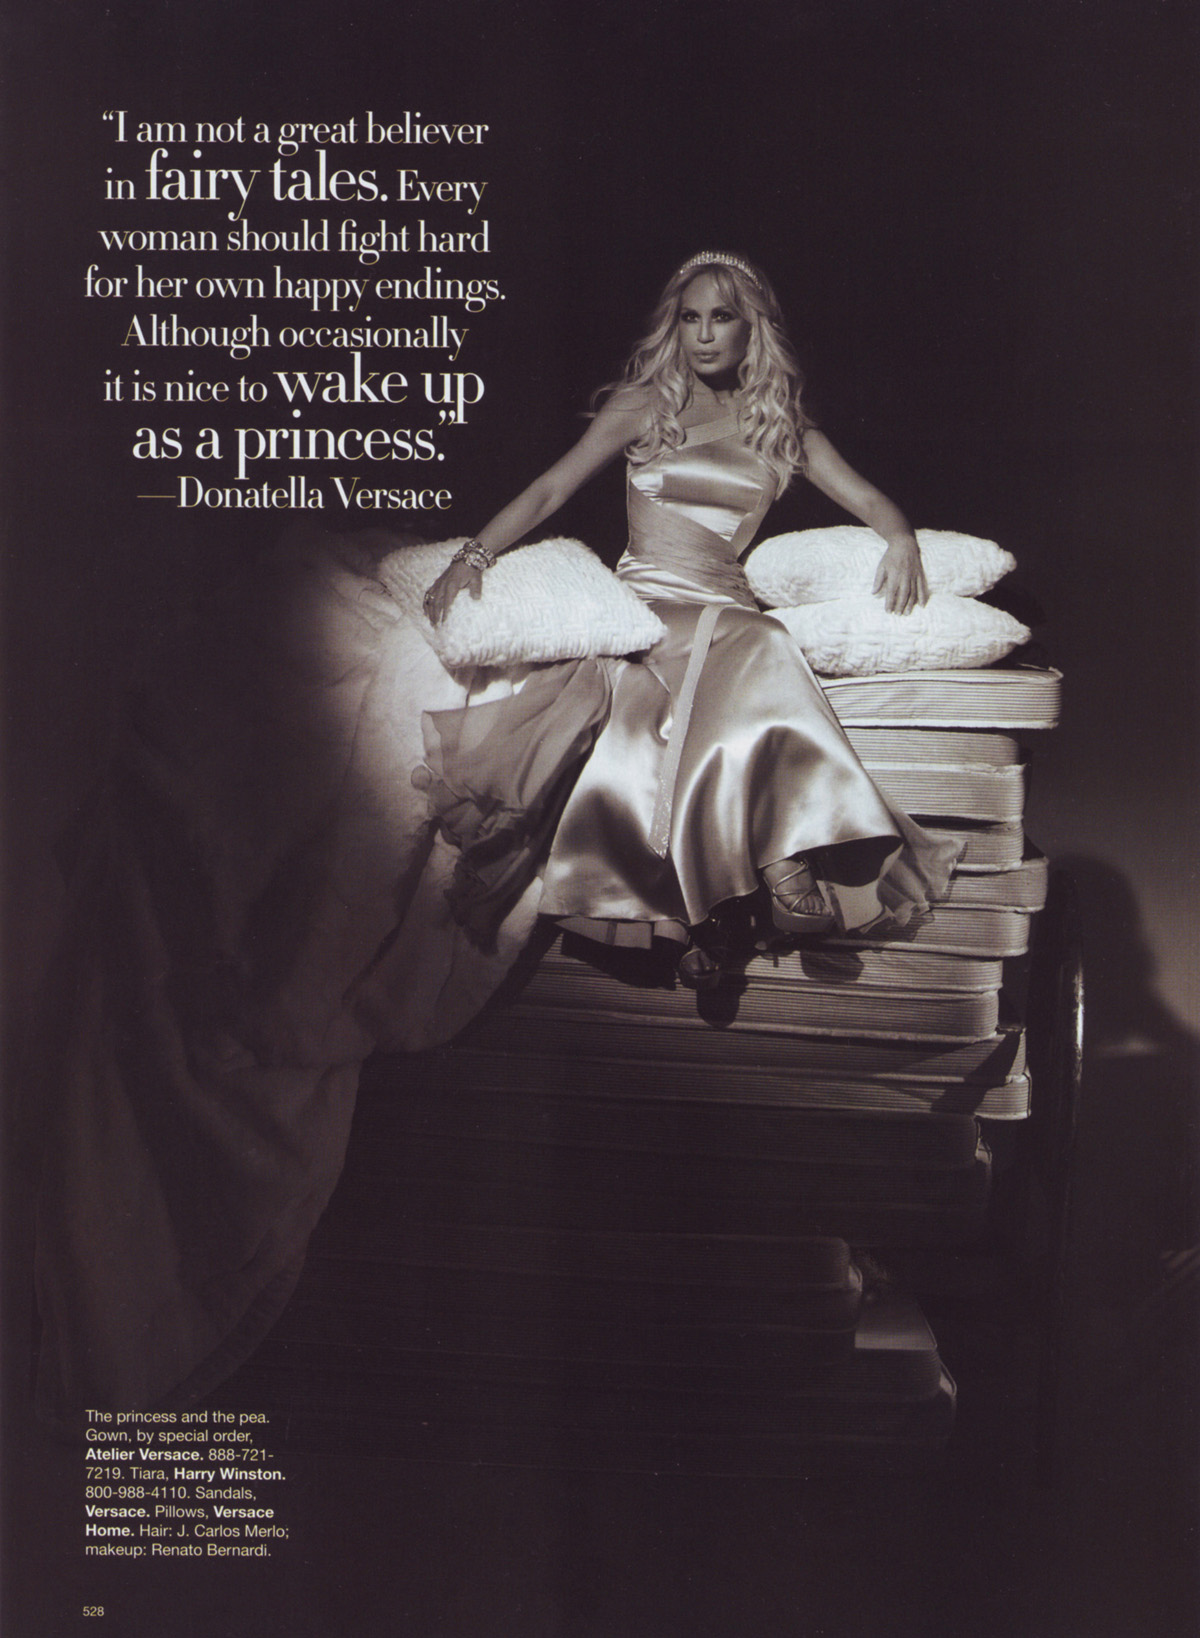 Donatella Versace as the princess and the pea.